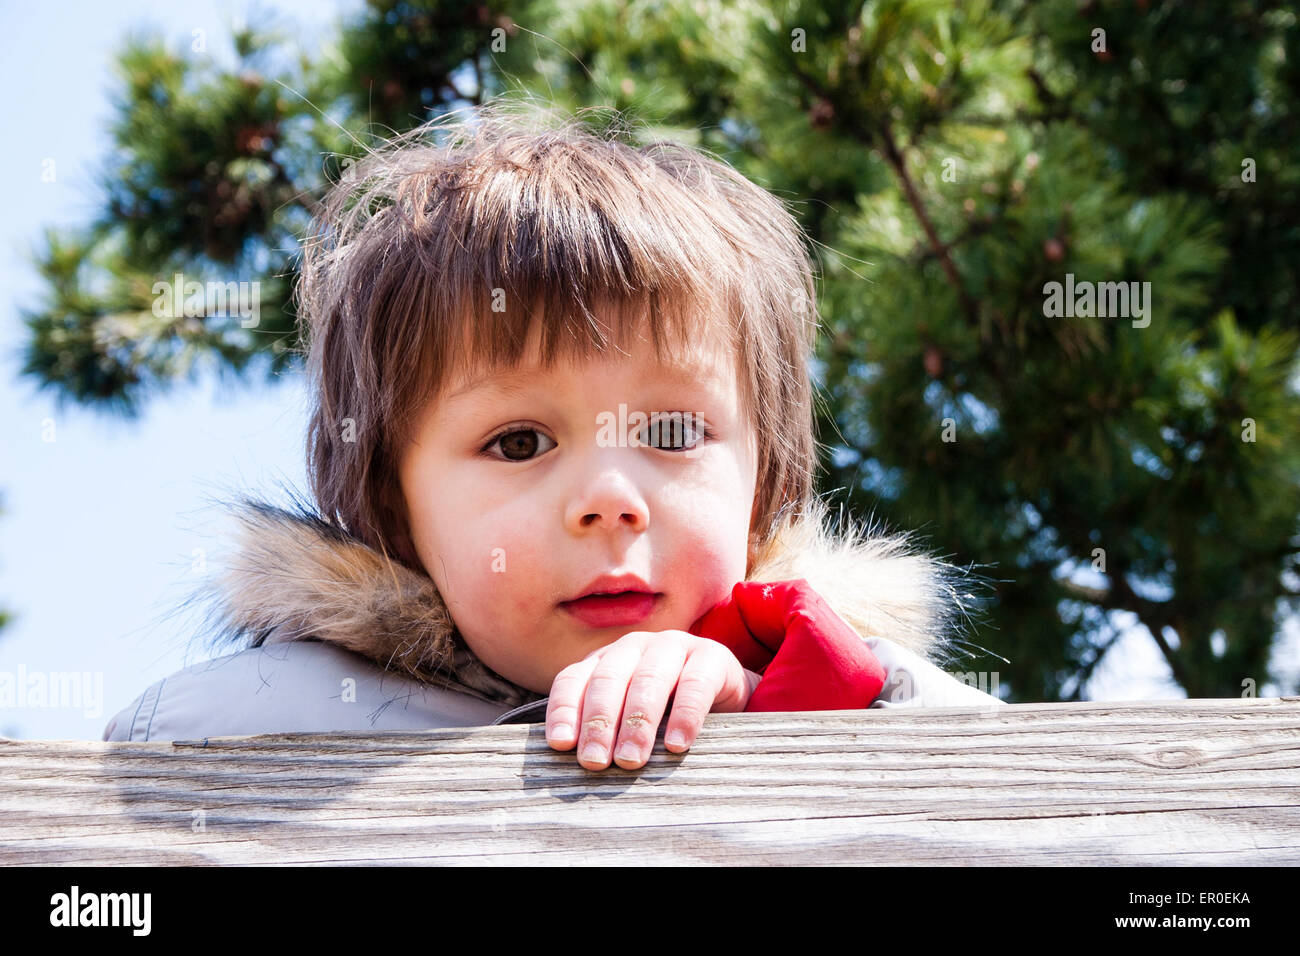 3 or 4 year old Caucasian child, boy. Head & shoulders. Looking over wooden fence, looking at viewer, happy, - Stock Image